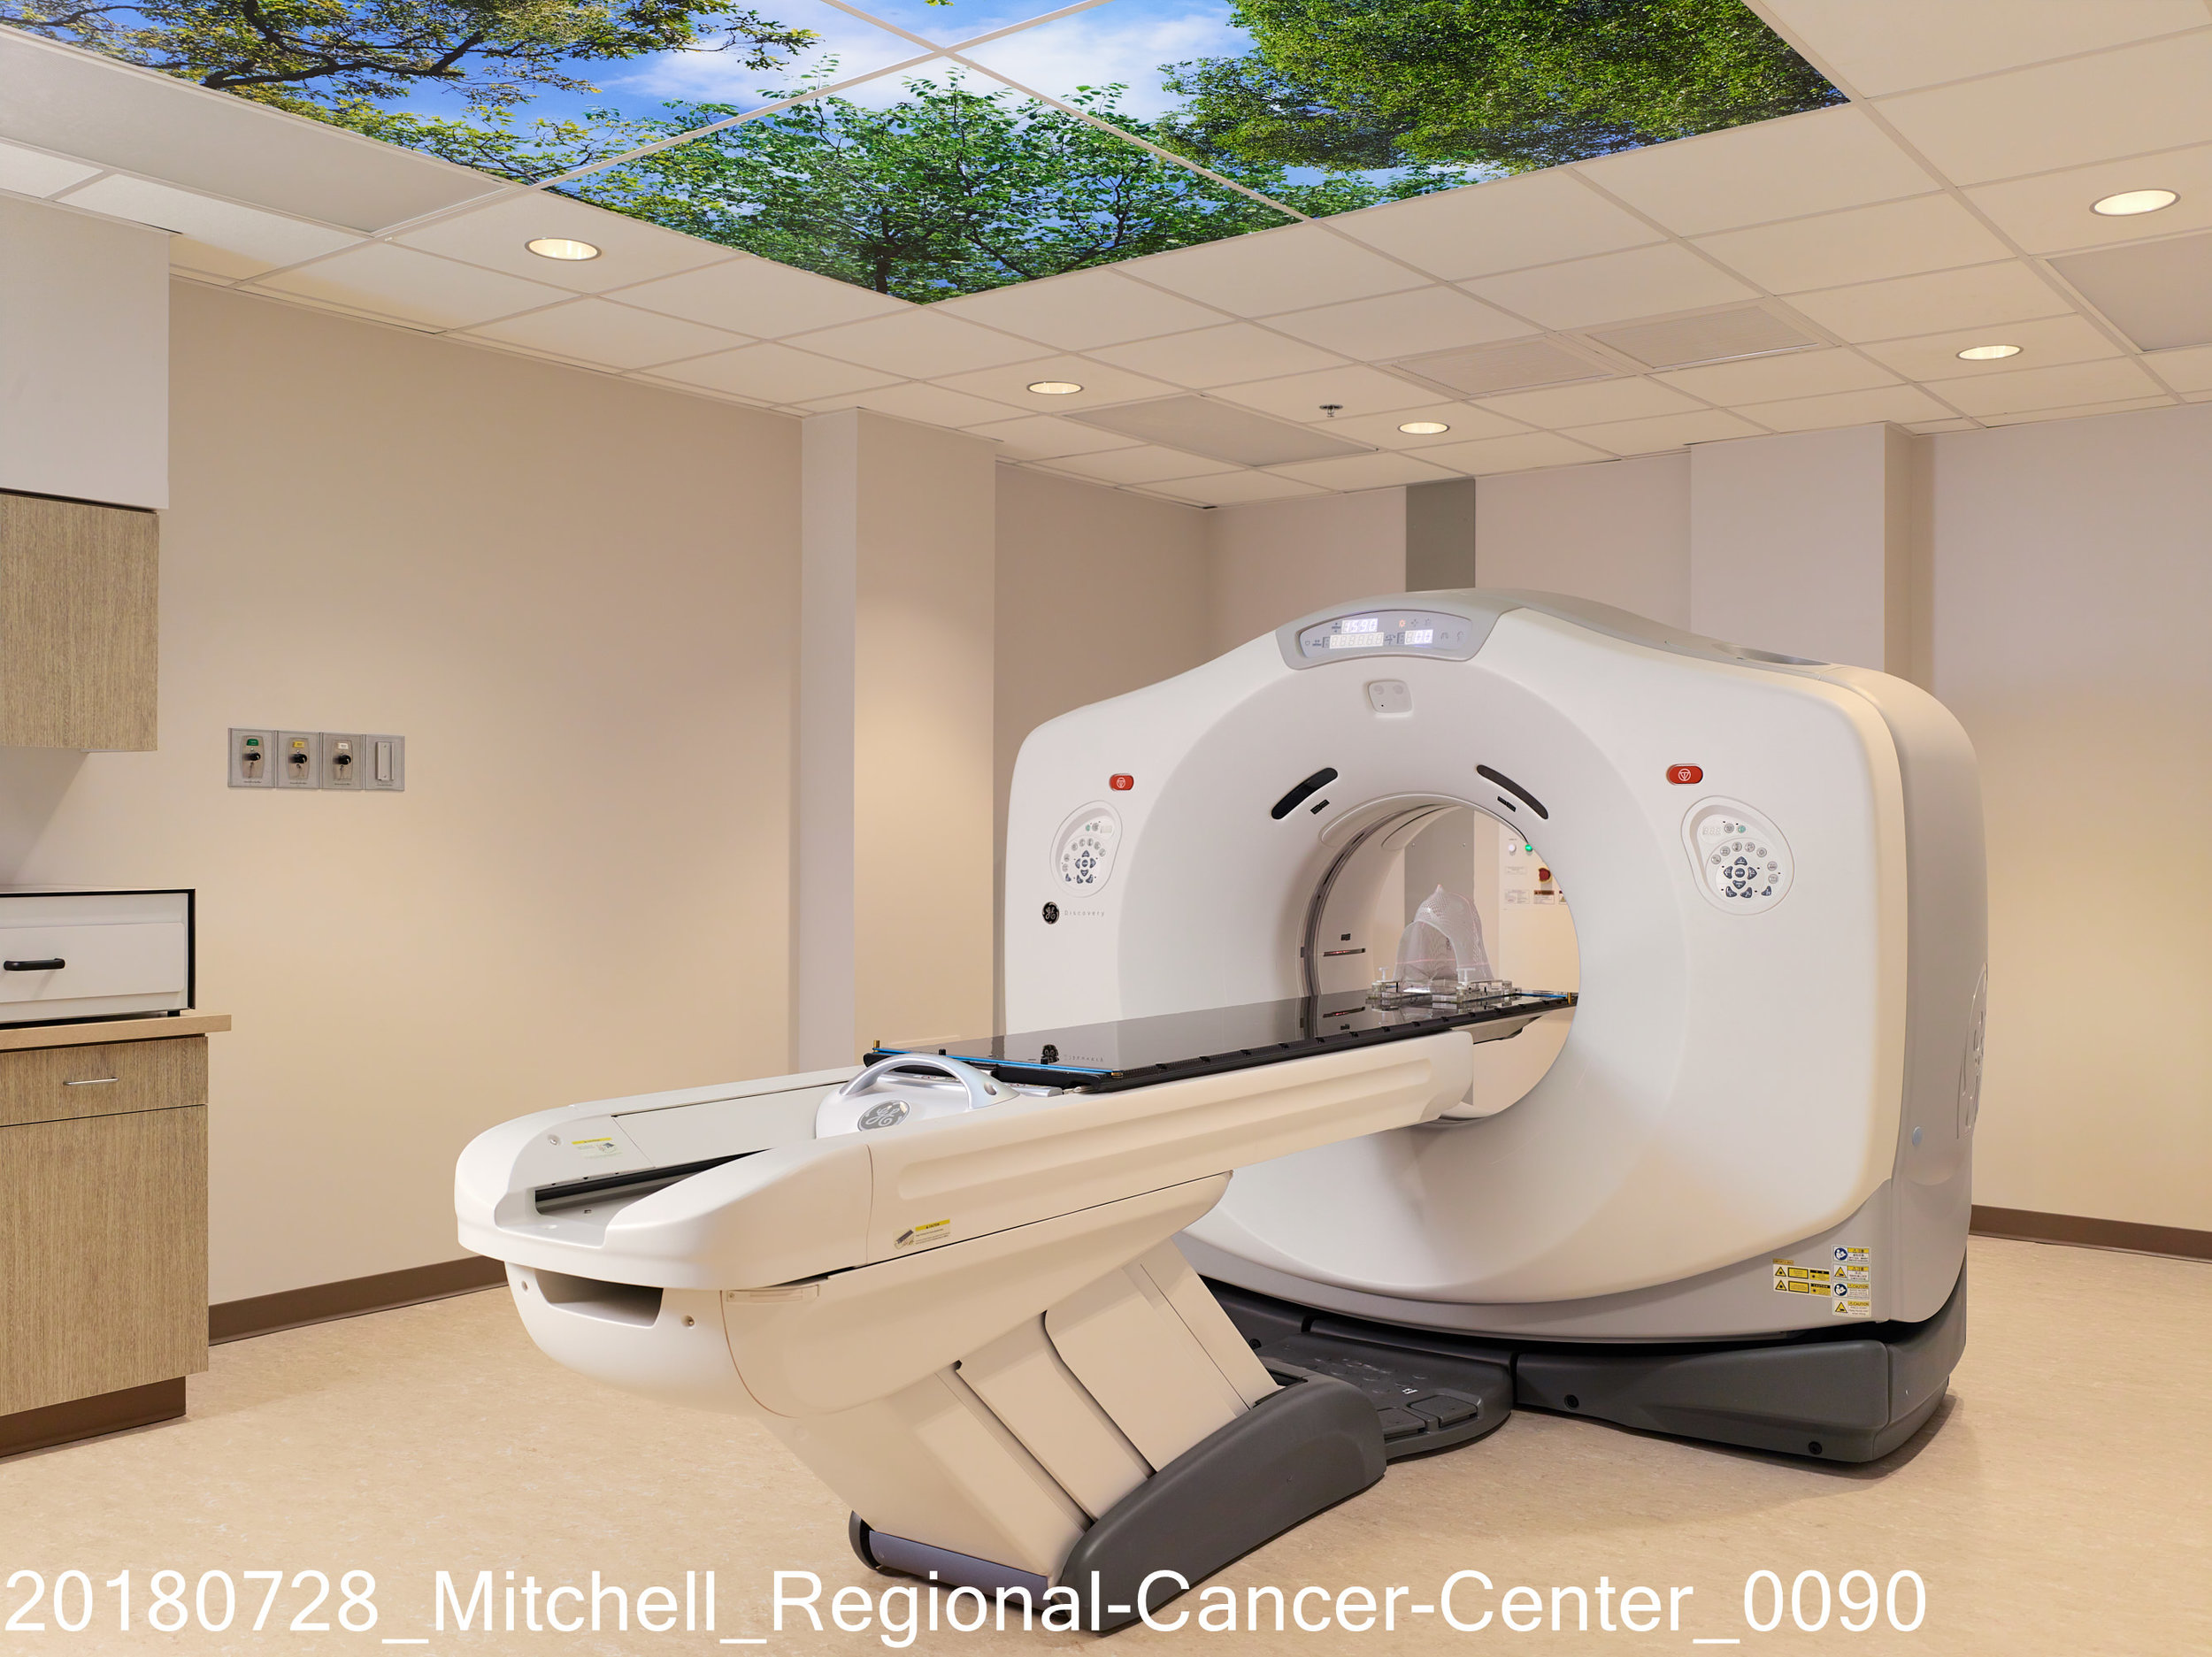 20180728_Mitchell_Regional-Cancer-Center_0090.jpg